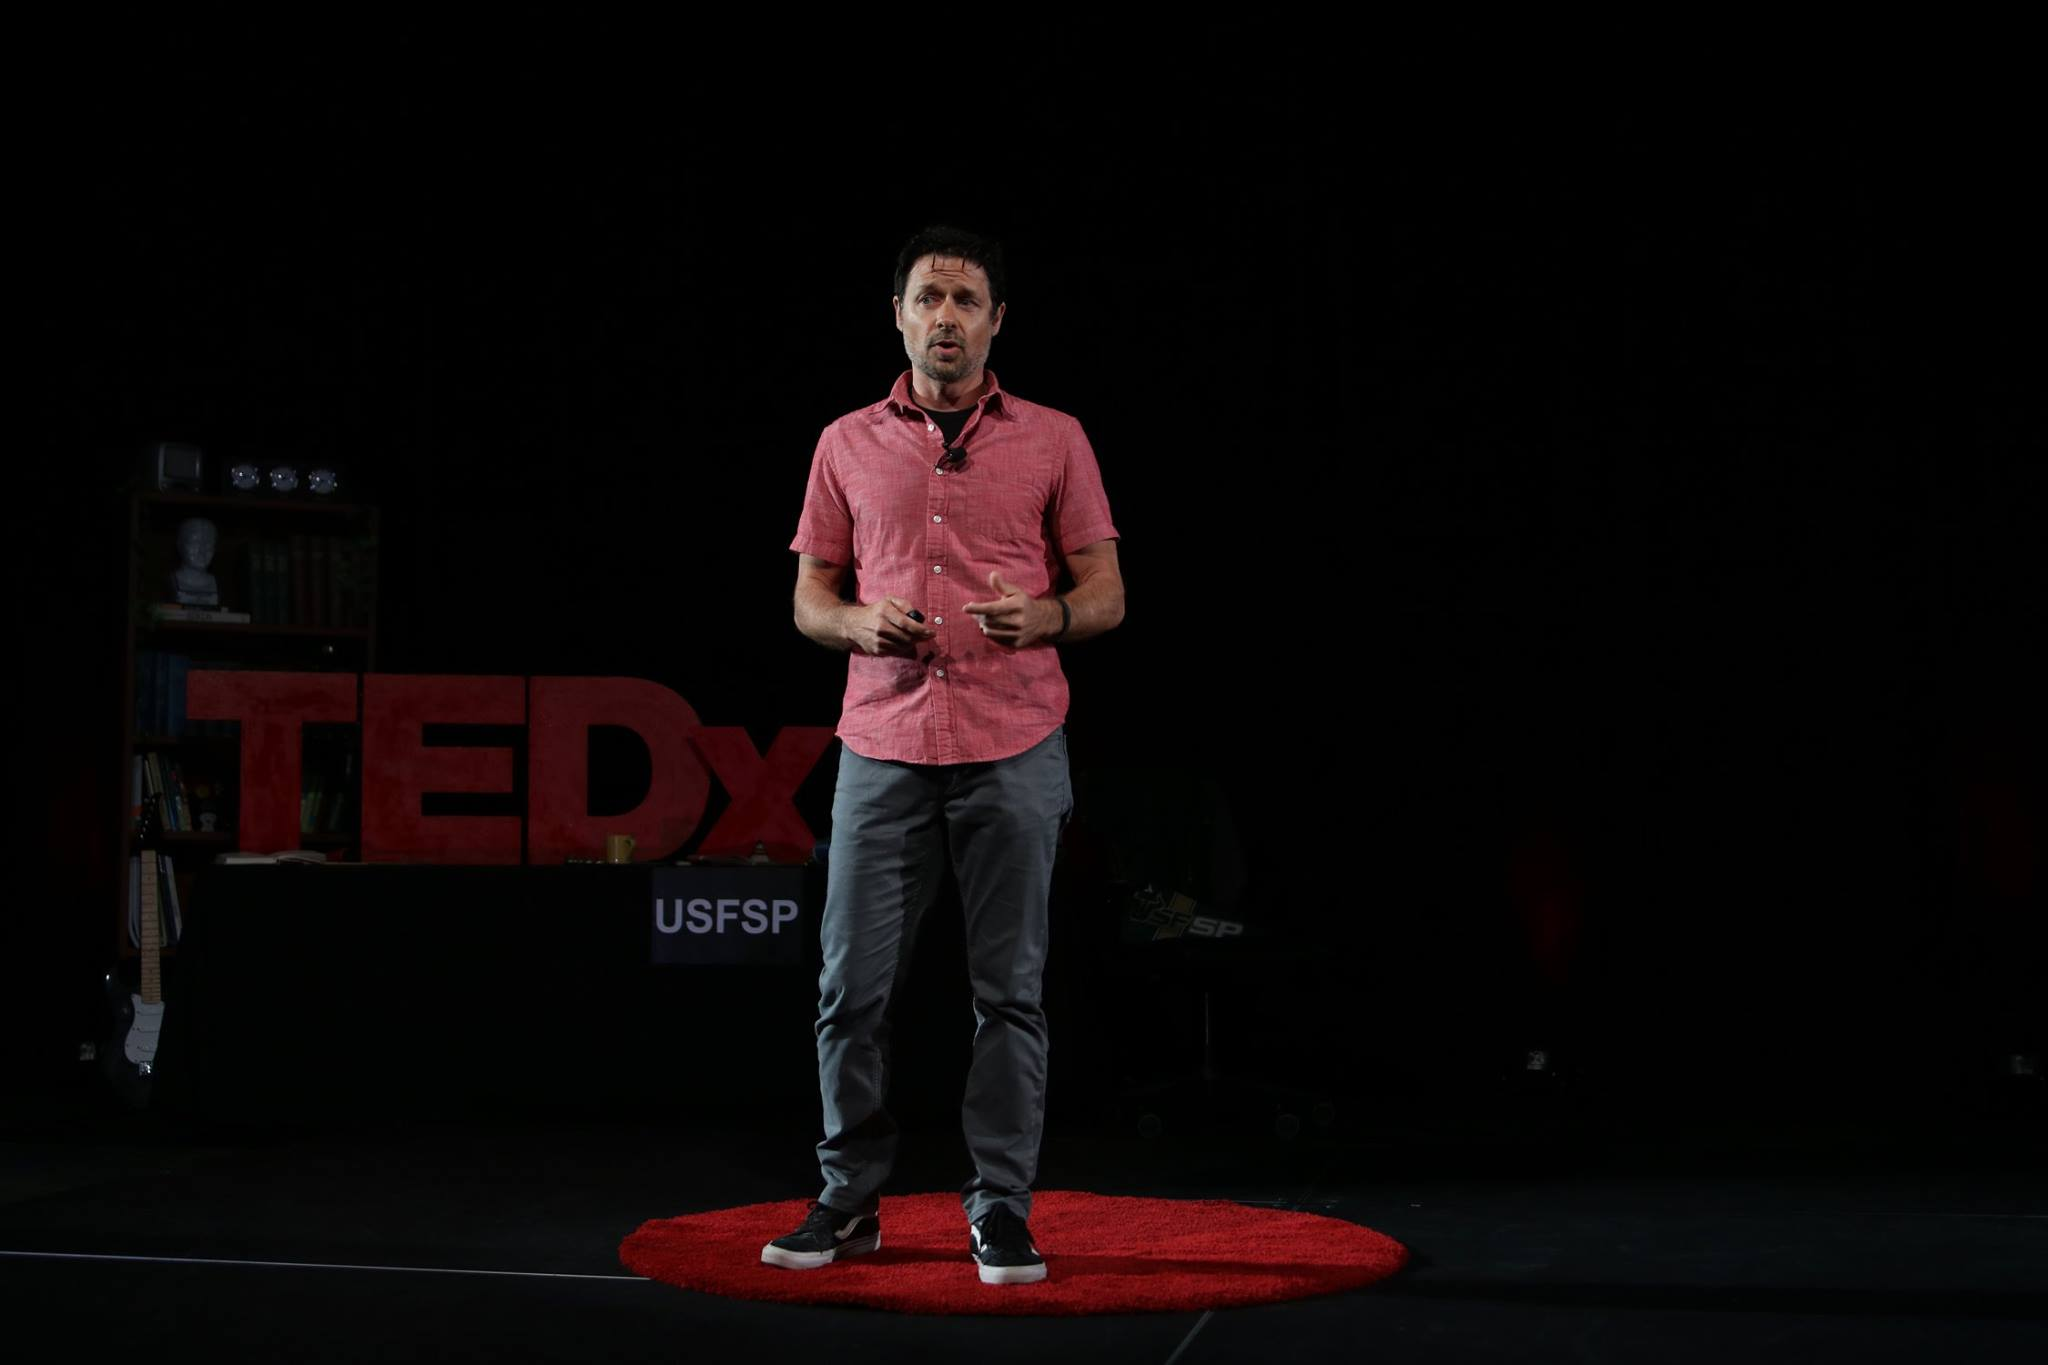 TedxUSFSP: Sparking Change within a new generation